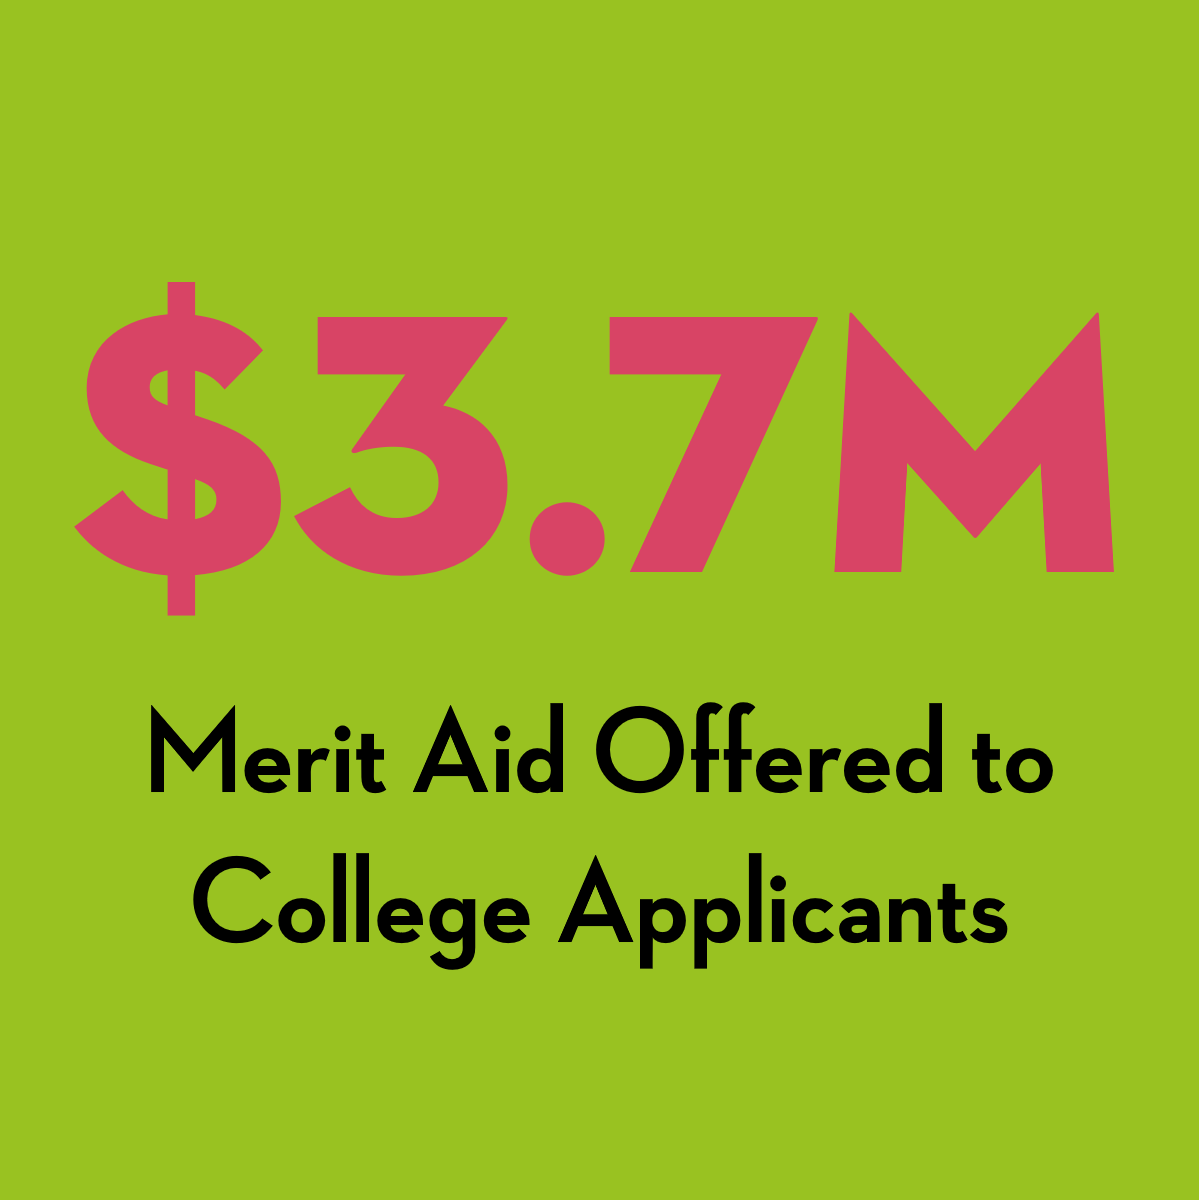 3.7 million dollars of merit aid was offered to college applicants